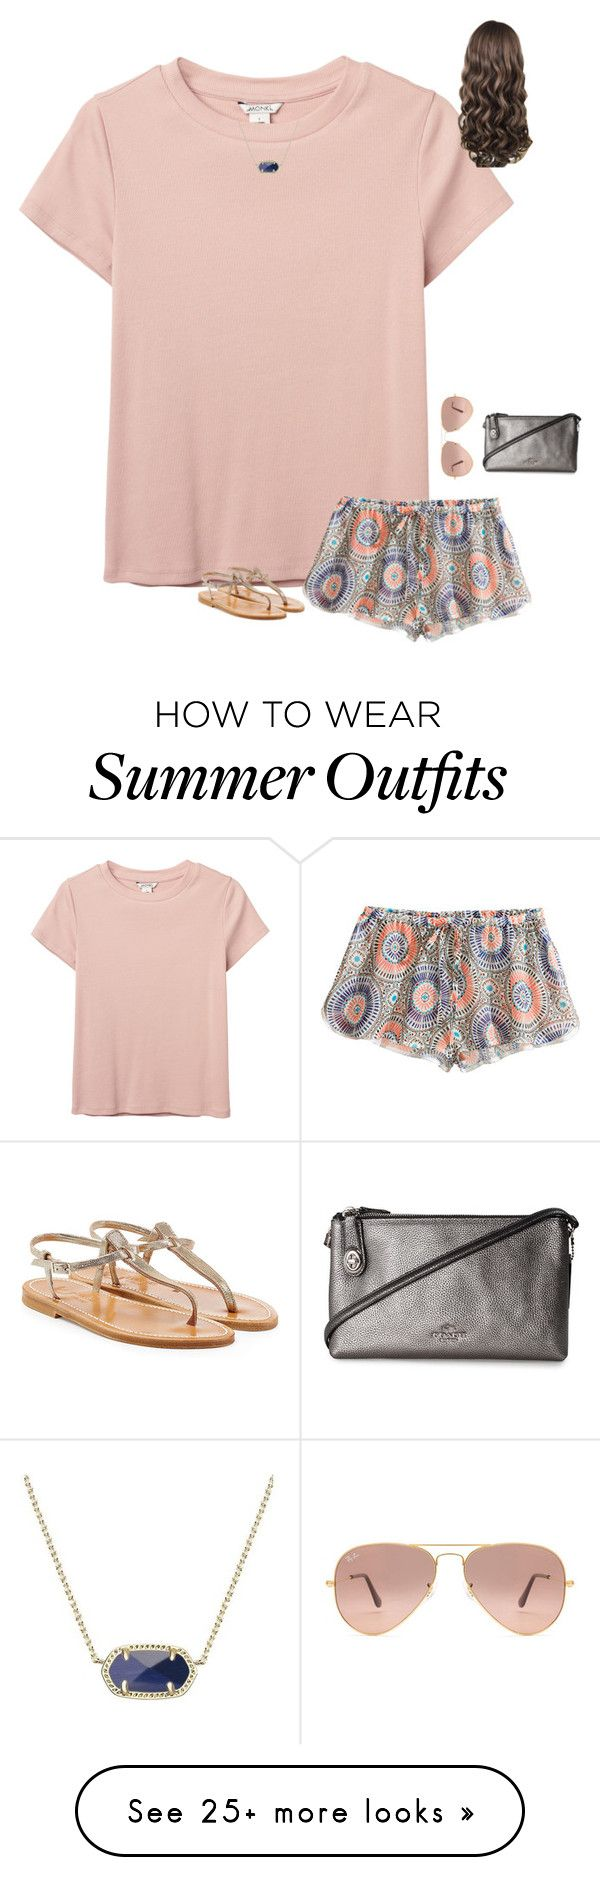 """""""Summer Outfit ☀️"""" by liblu13 on Polyvore featuring Ray-Ban, Monki, H&M, Kendra Scott, K. Jacques and Coach"""